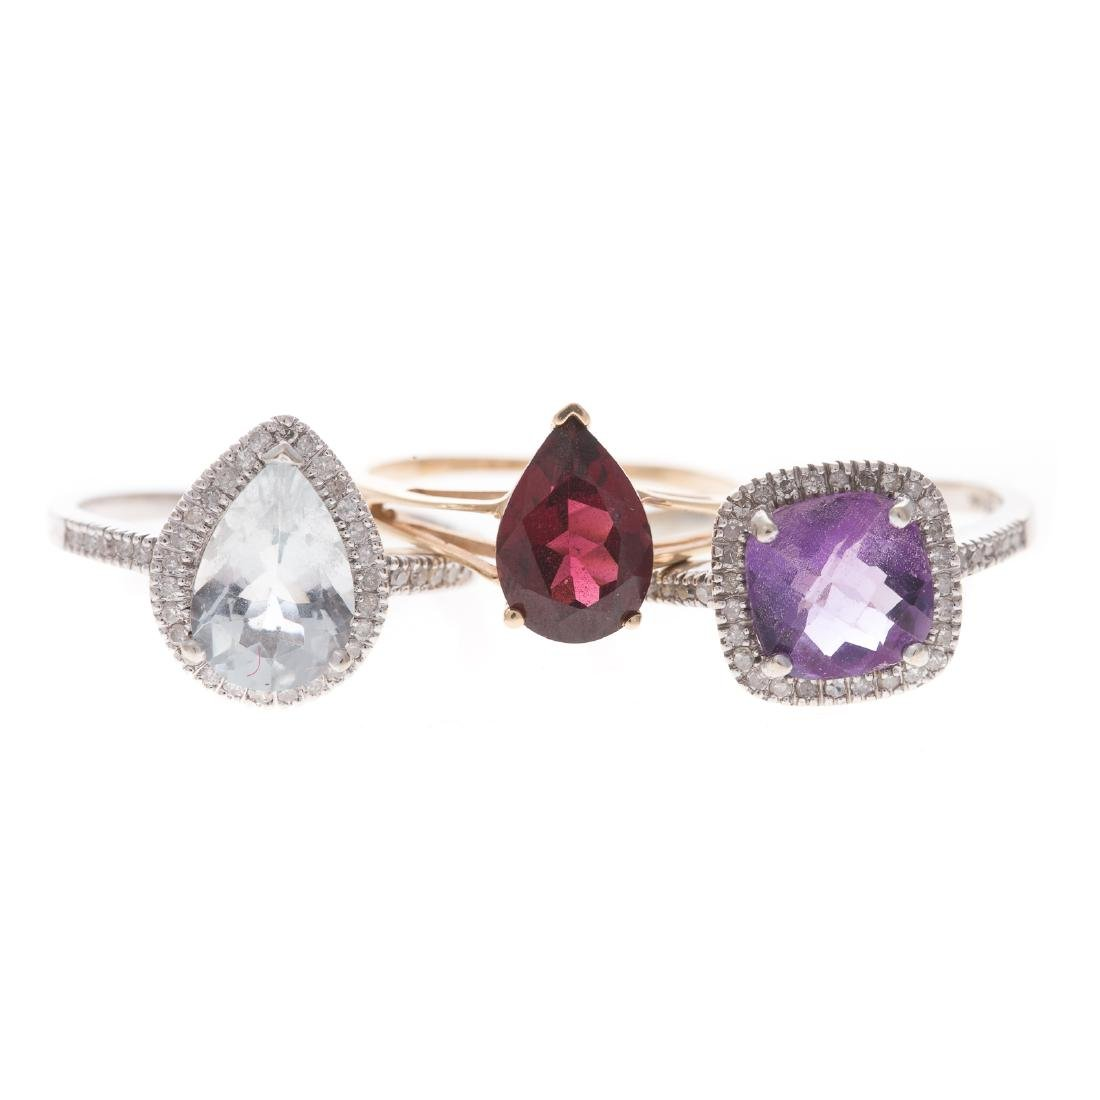 A Trio of Lady's Gemstone Rings in 10K Gold